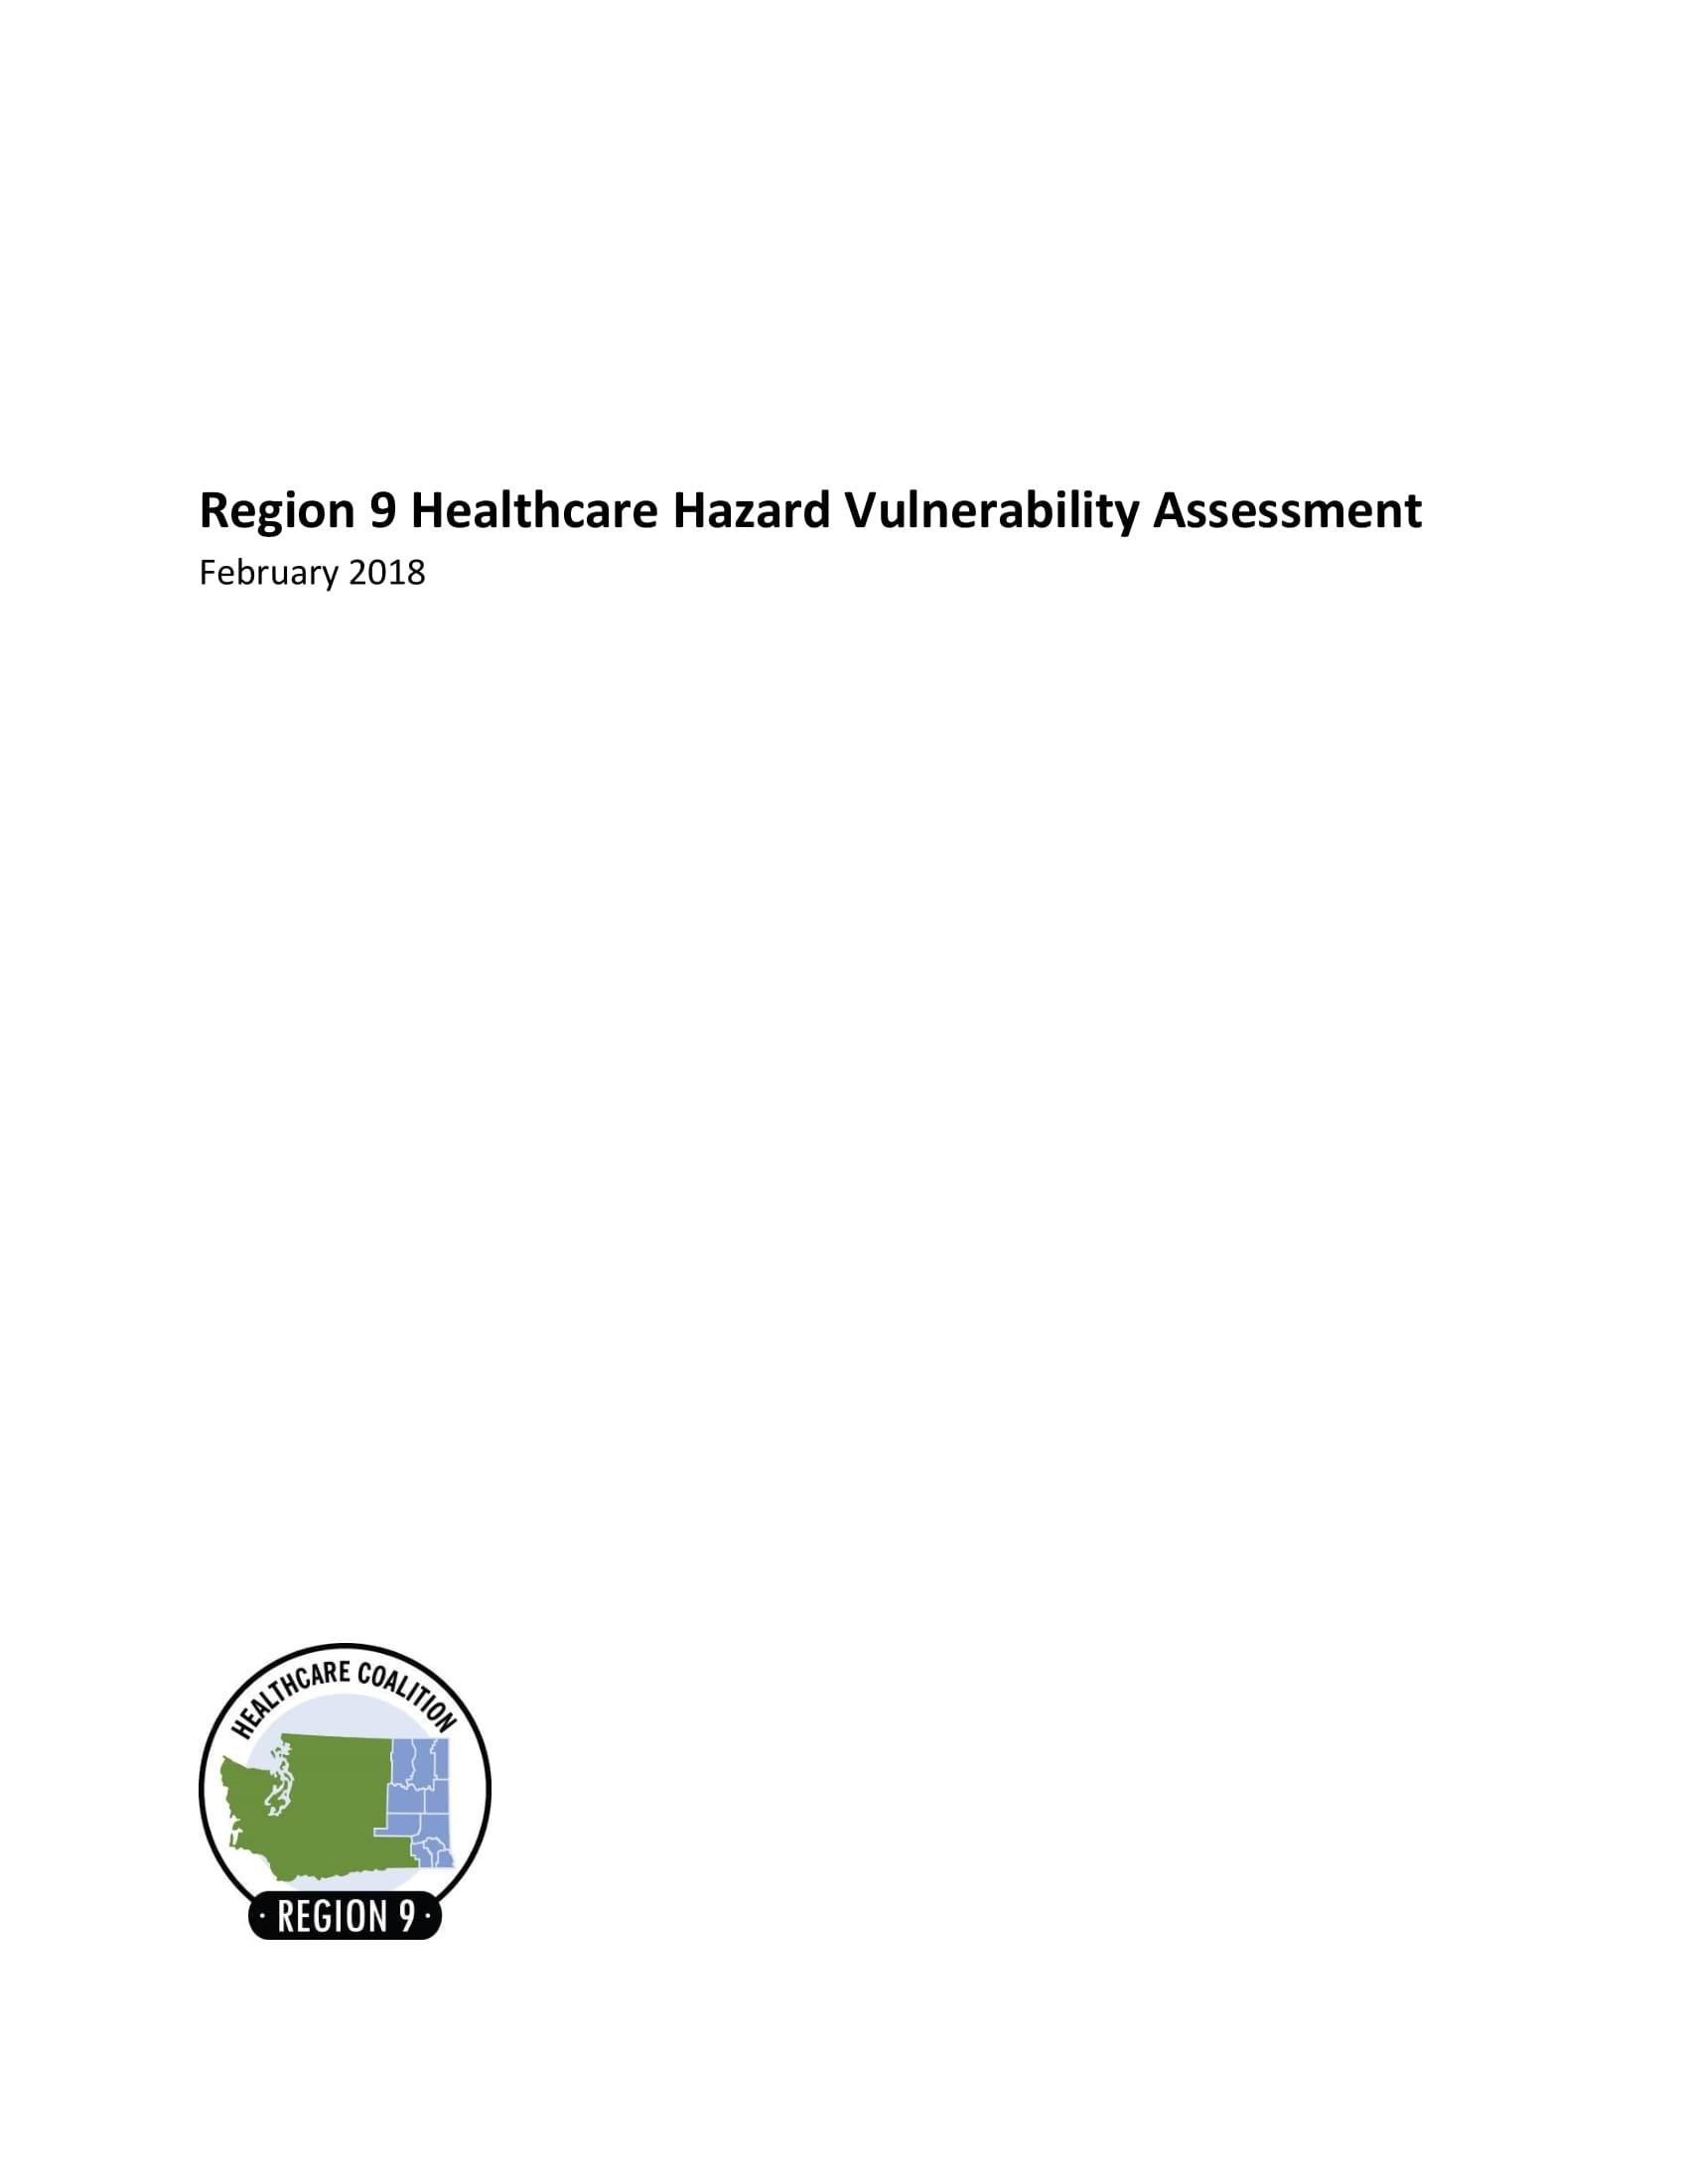 healthcare hazard vulnerability analysis example